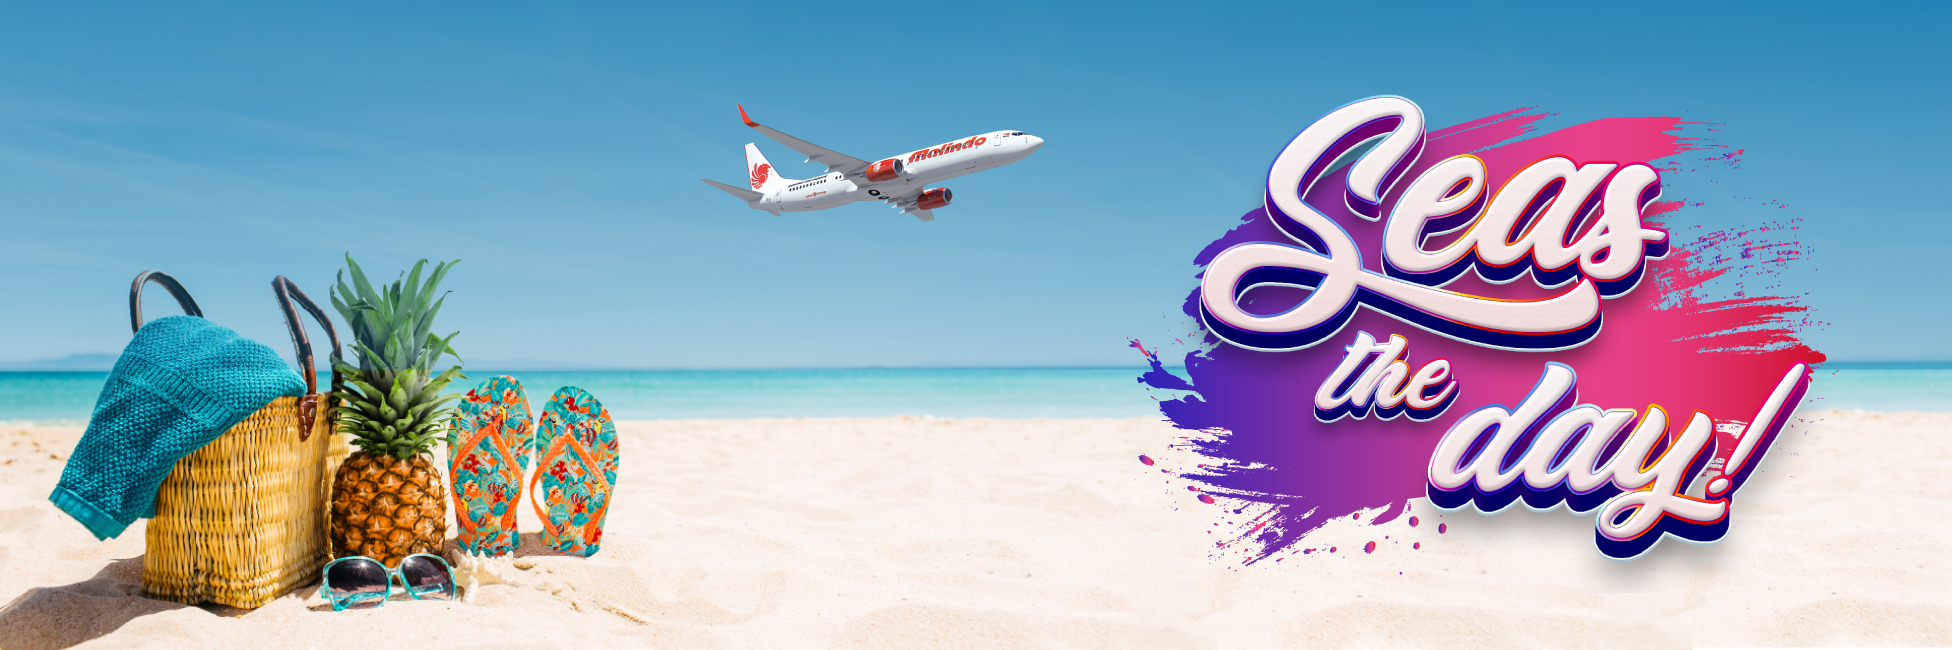 Malindo Air Seas the day! microsite seas the day